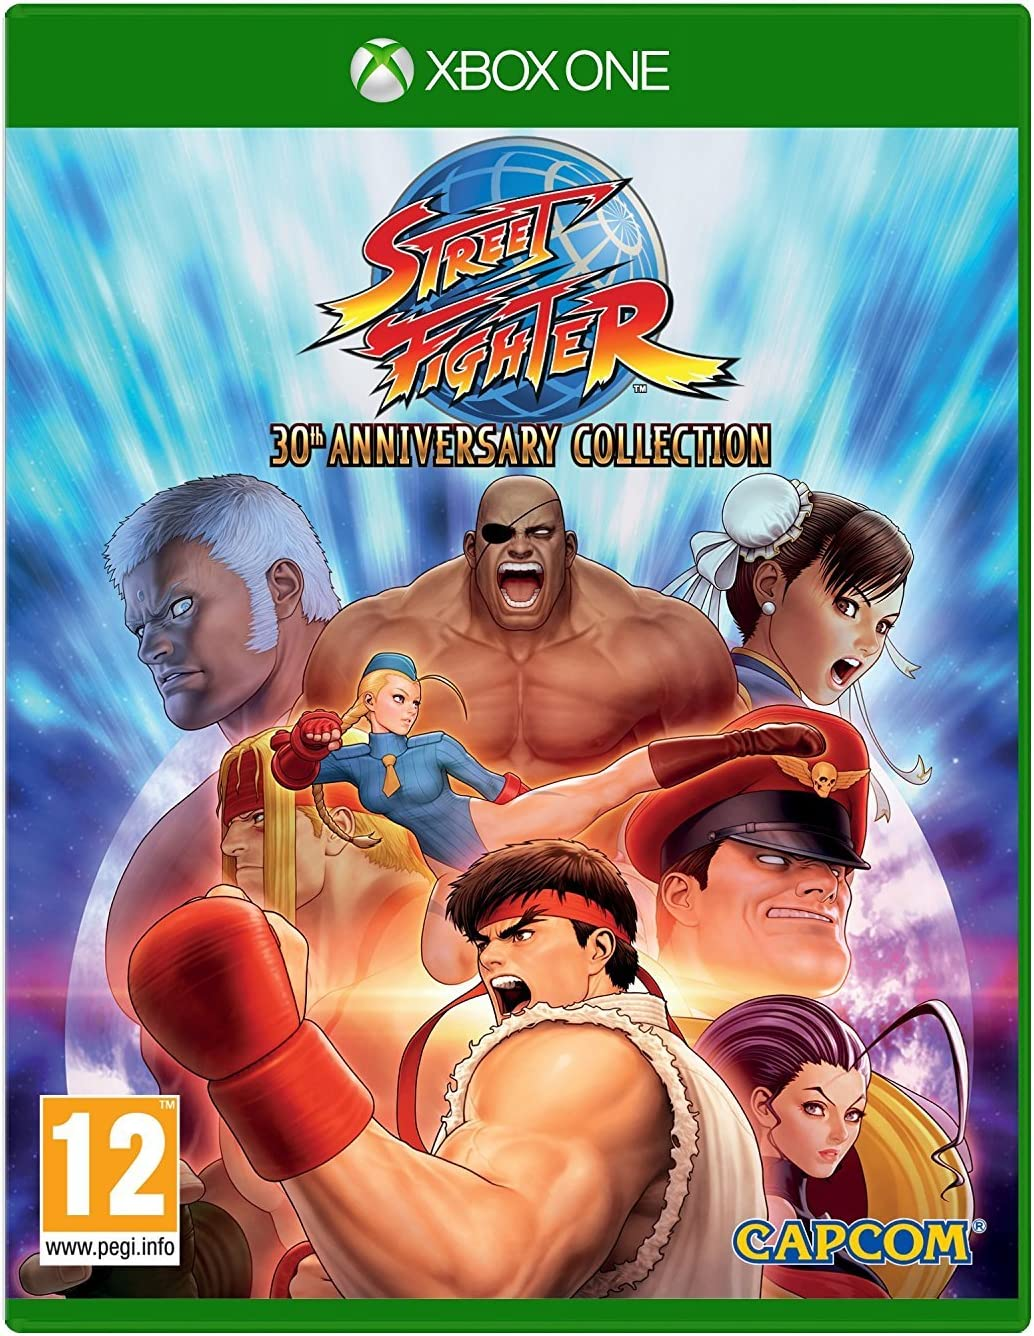 Amazon.com: Street Fighter 30th Anniversary Collection (Xbox One): Video Games